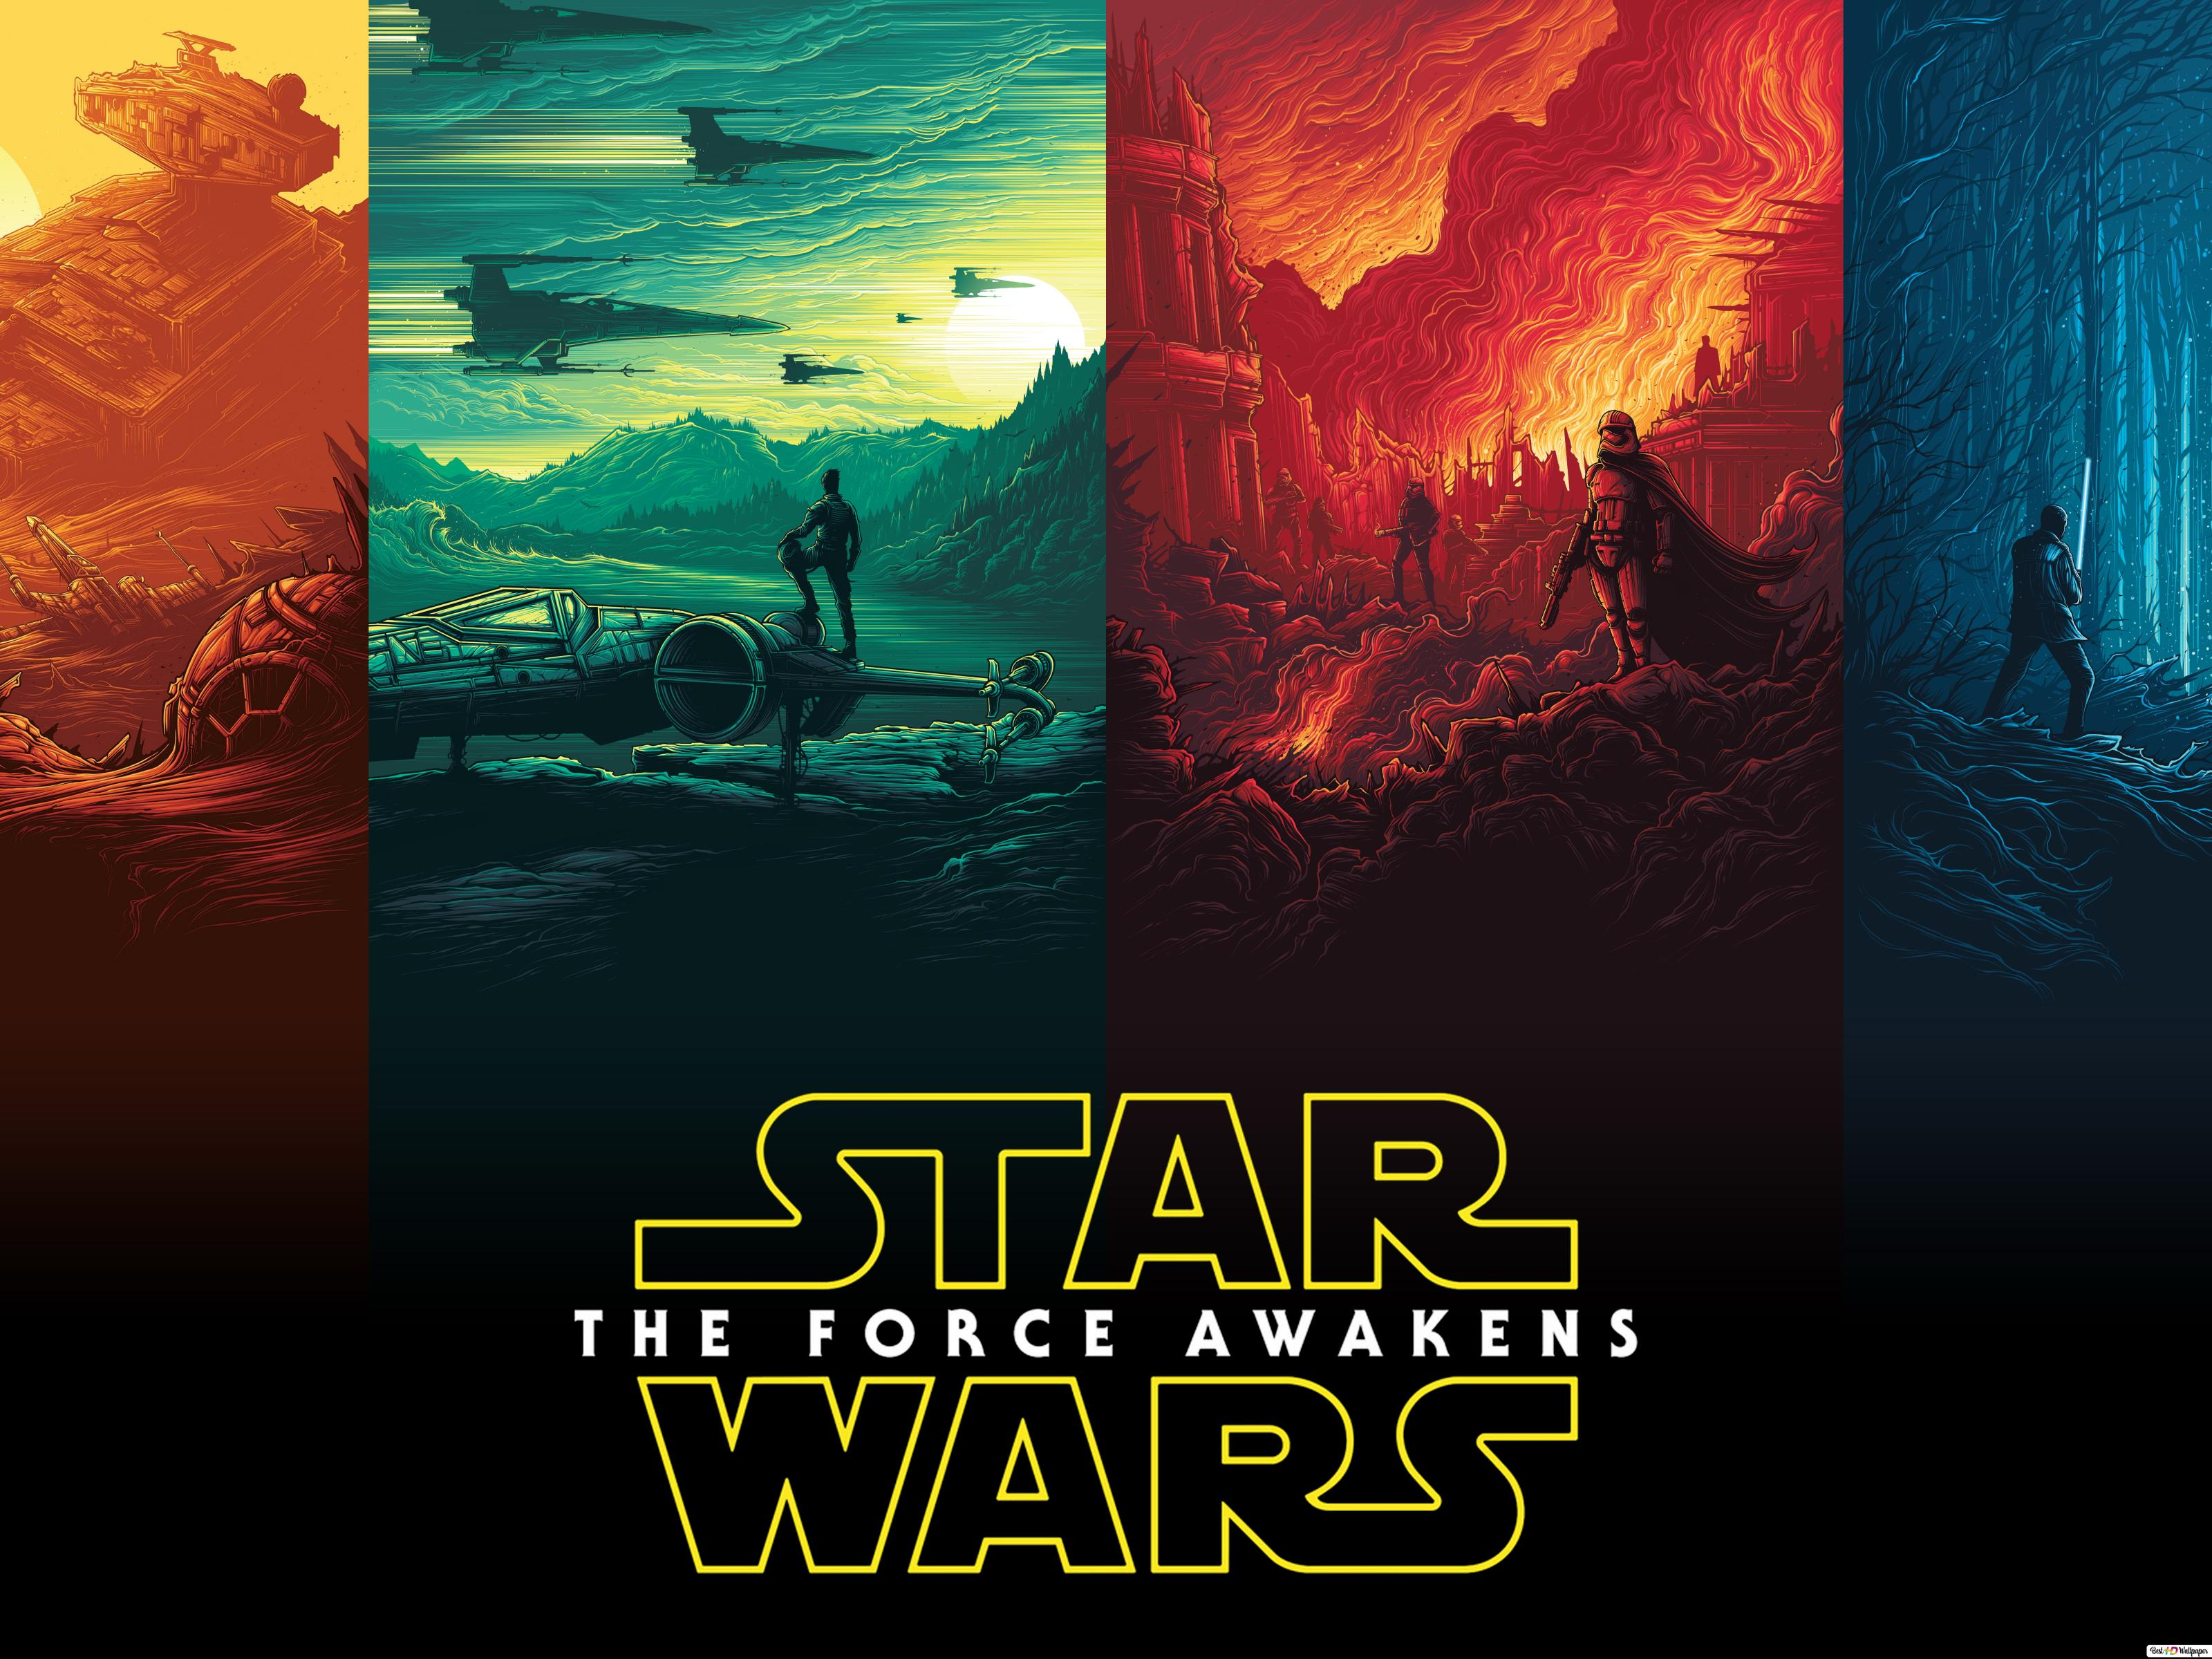 Star Wars Episode Vii The Force Awakens 2015 Hd Wallpaper Download